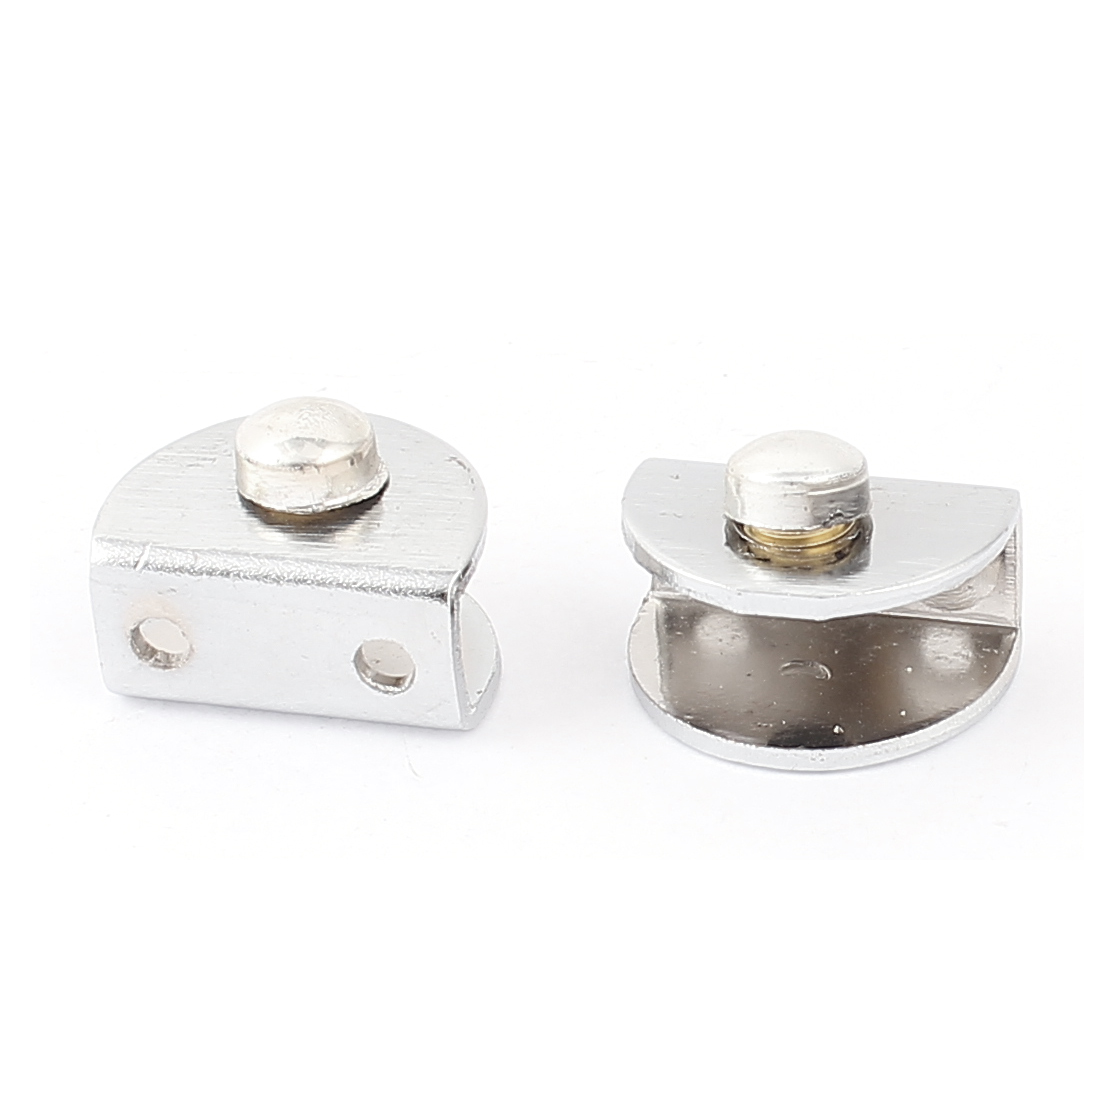 2pcs Stainless Steel Half Round Glass Board Clamp Clip Silver Tone